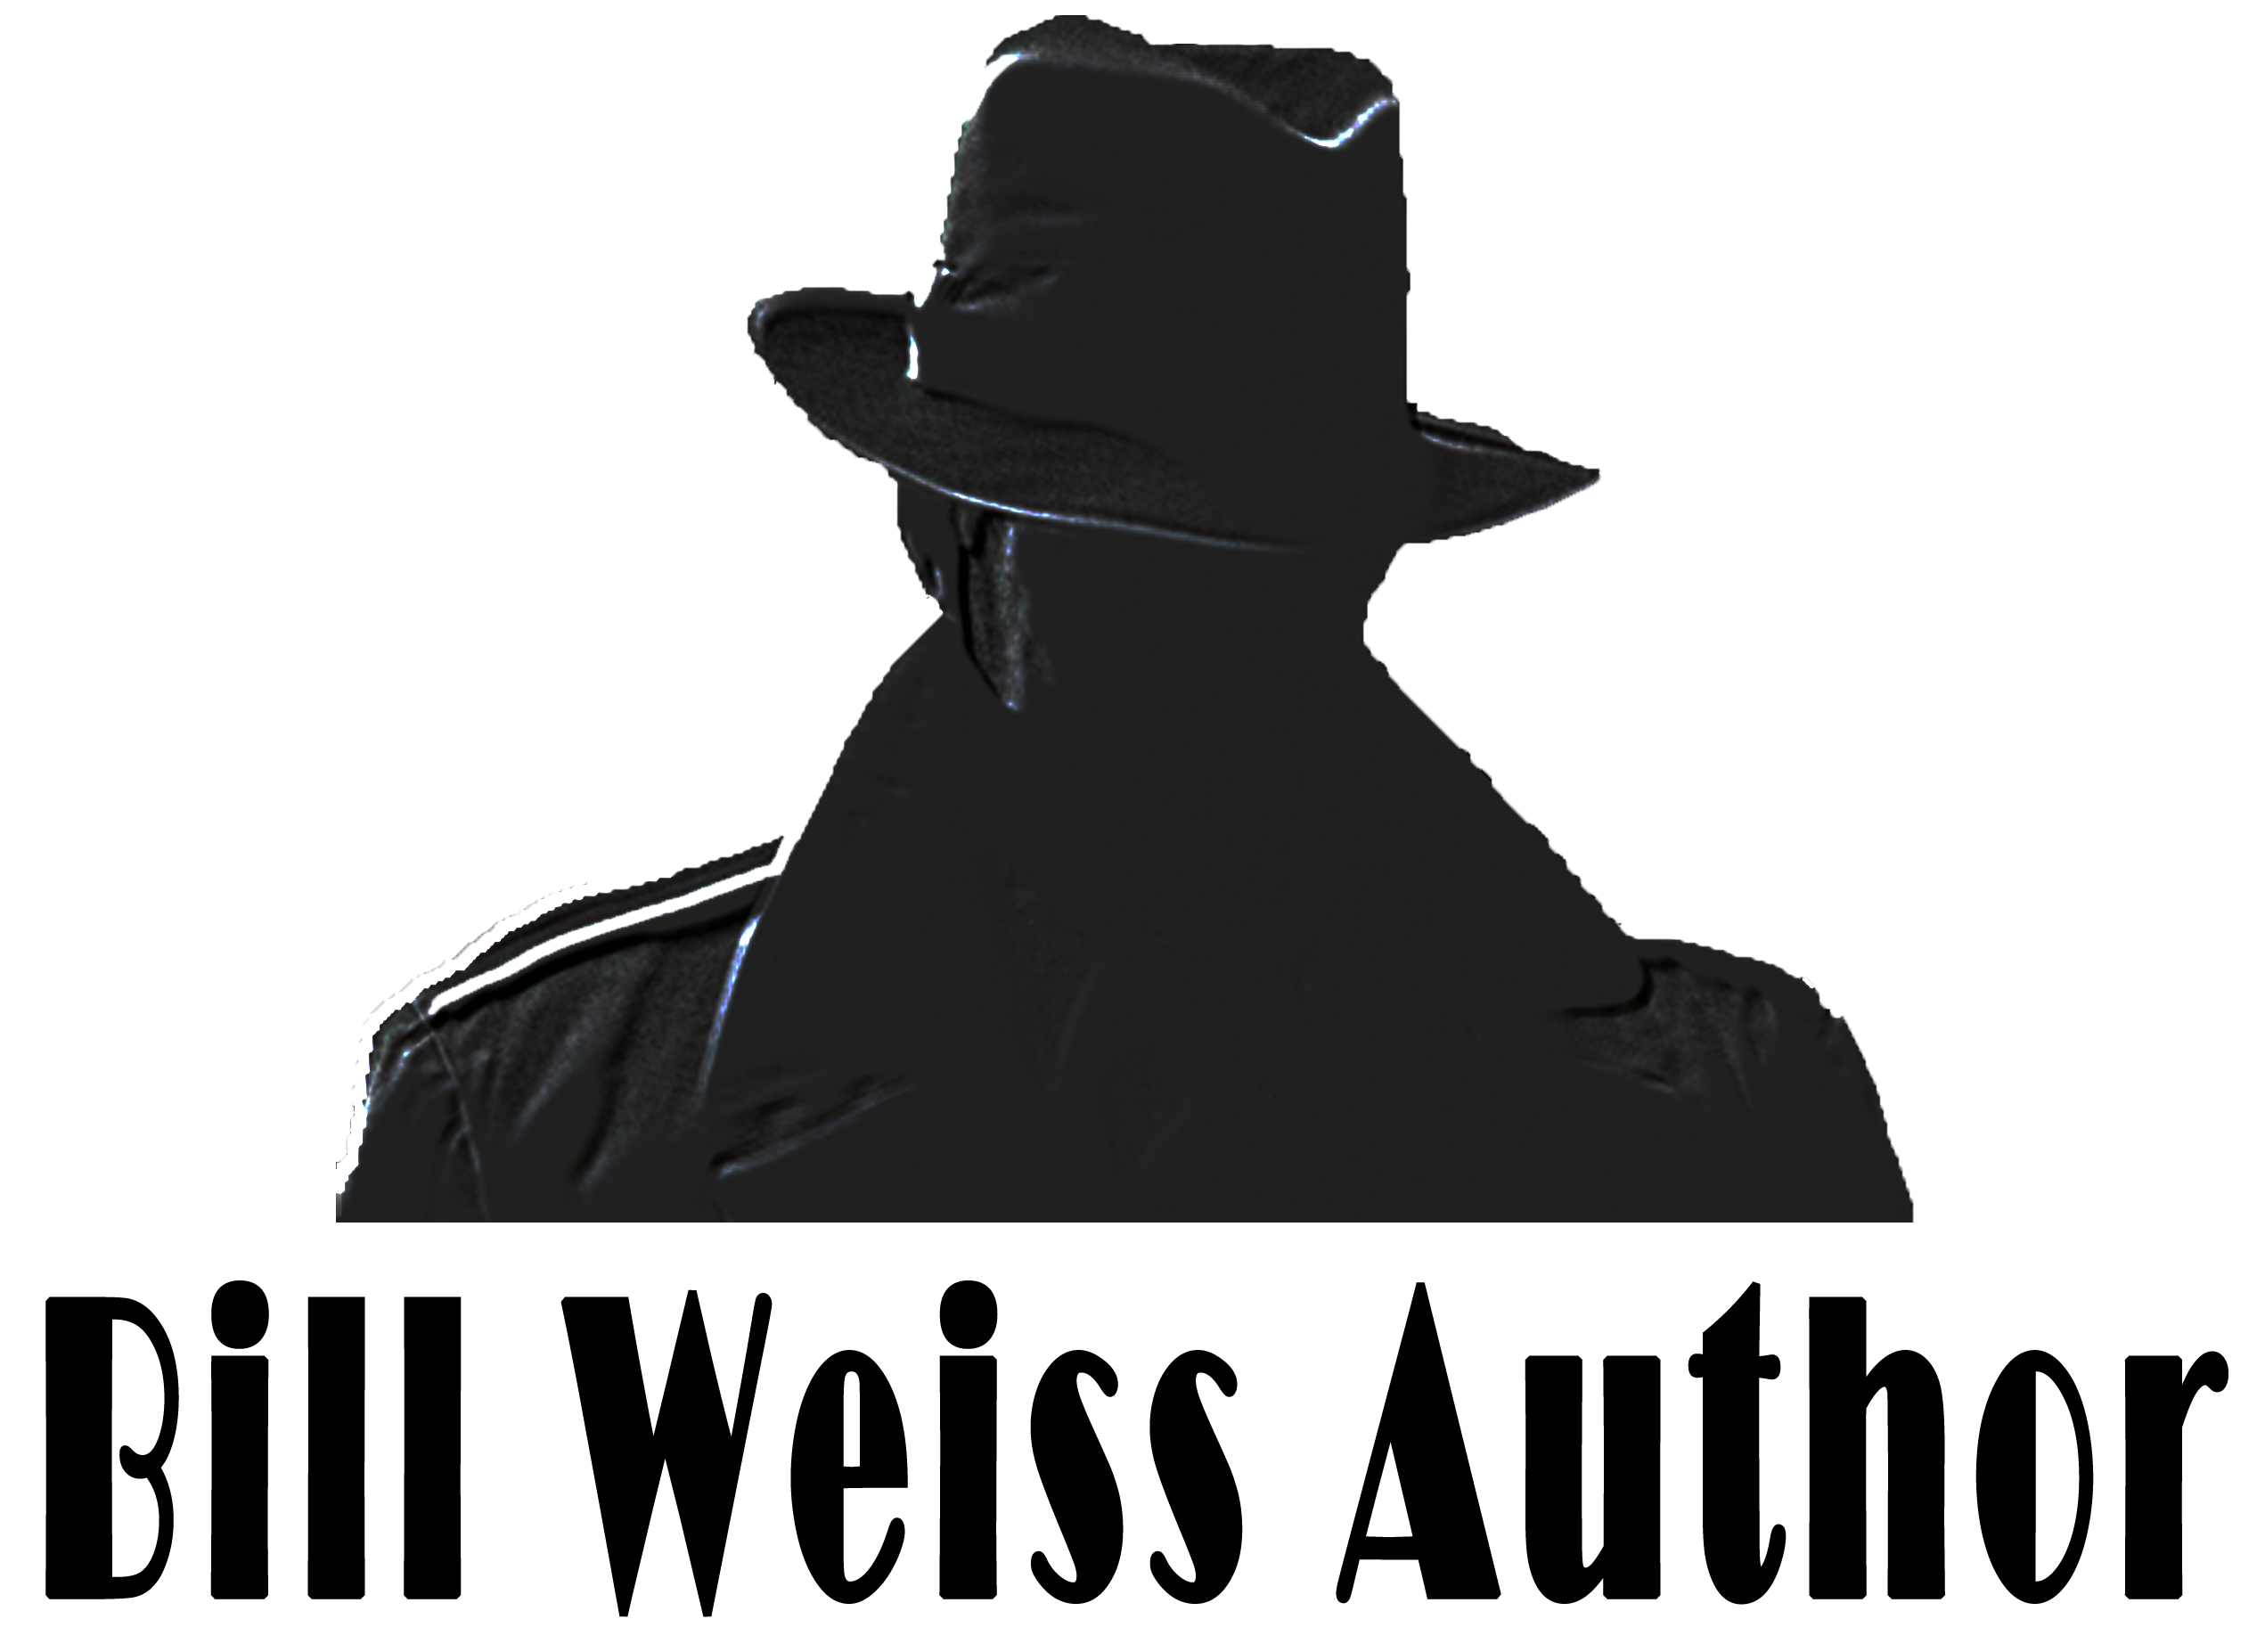 Bill Weiss Author